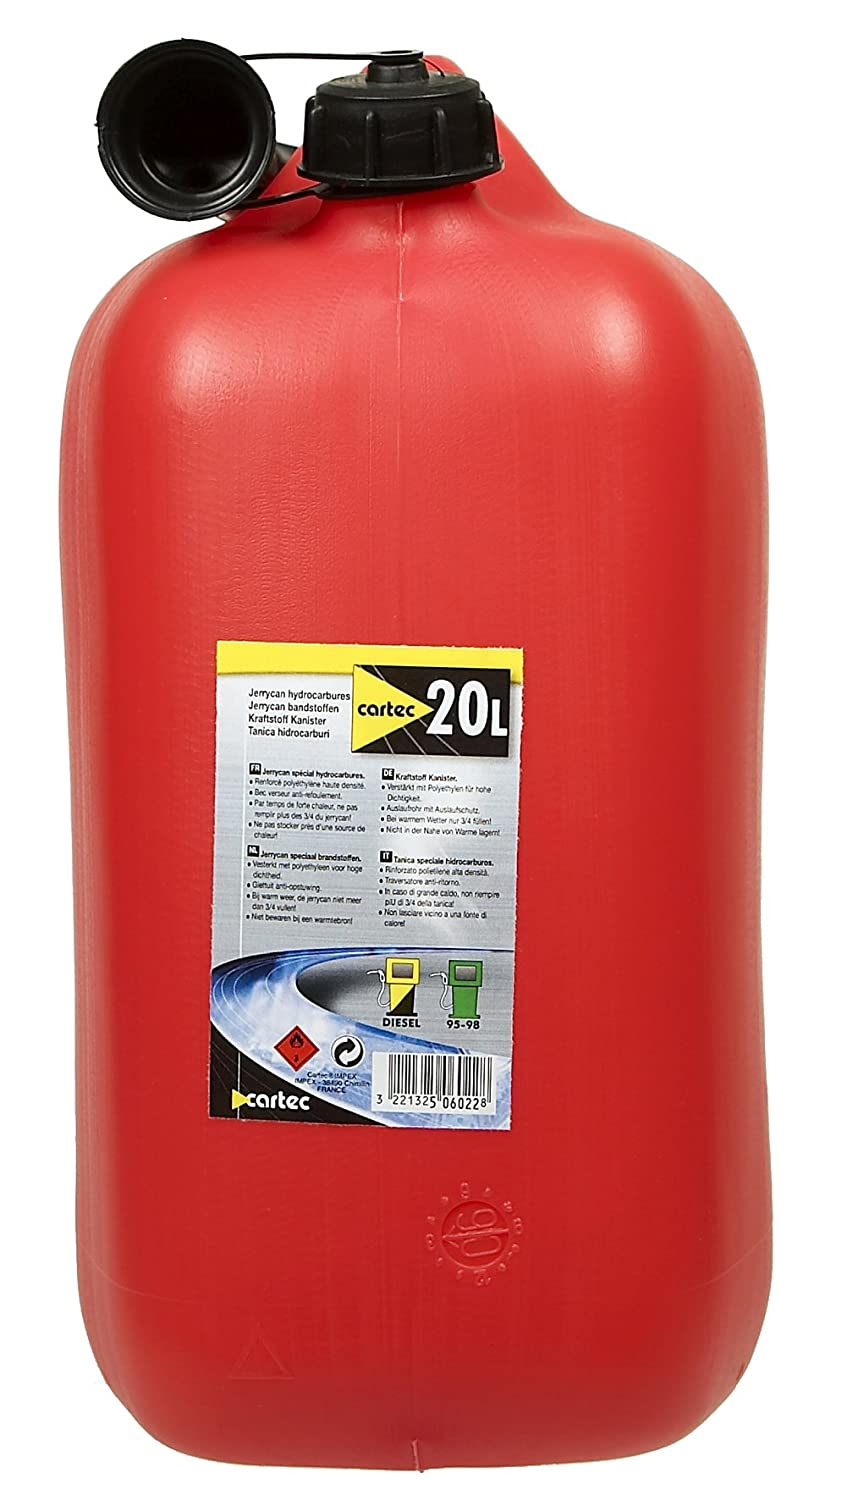 Cartec 506022 Jerrican Homologué Carburant 20 L low-cost